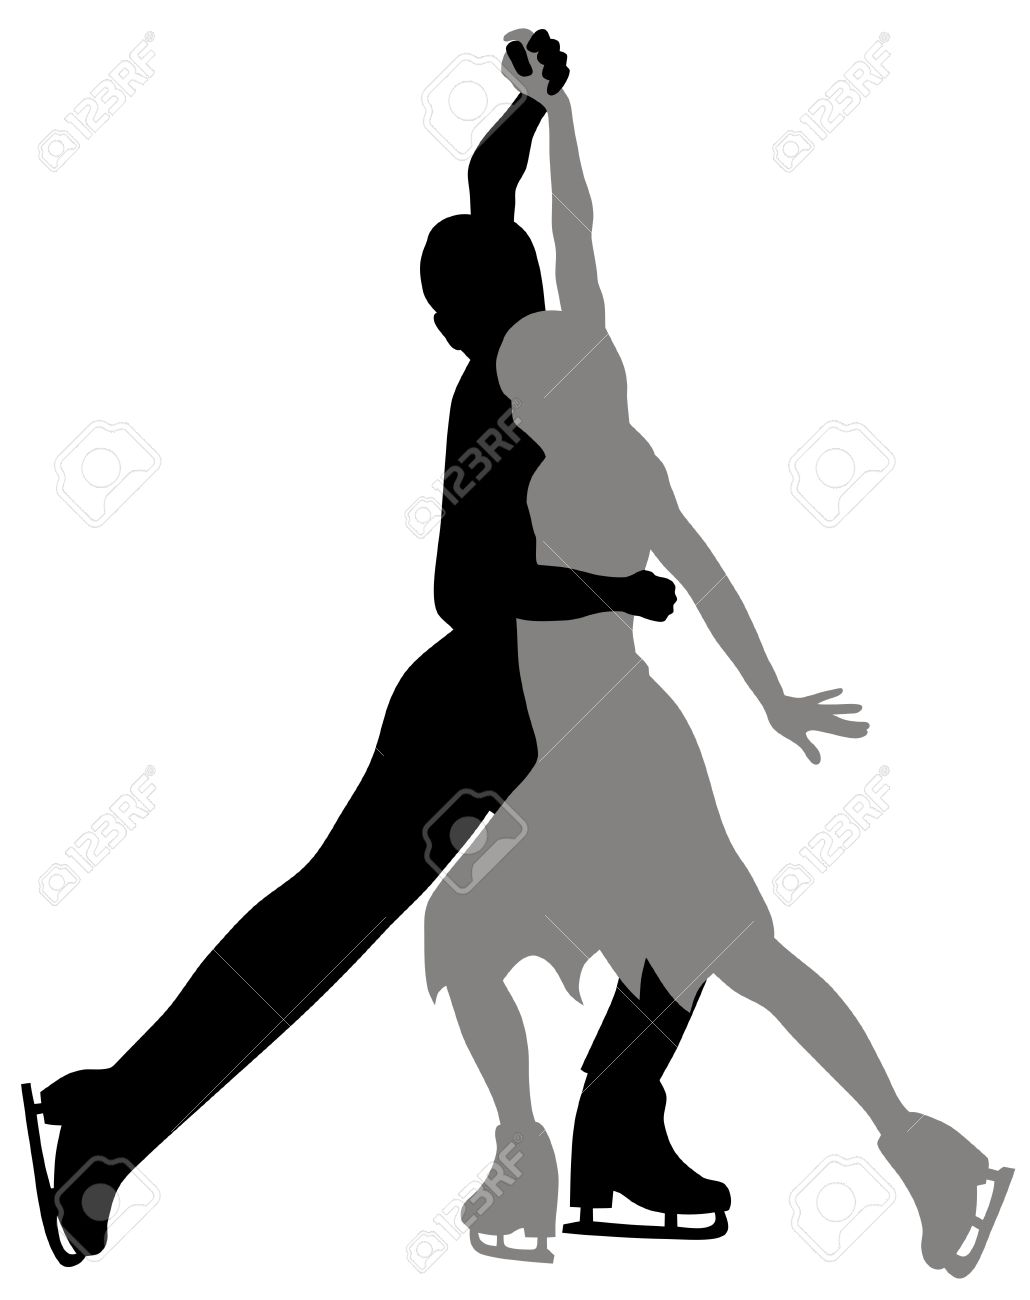 1030x1300 Pairs Figure Skating Clipart Amp Pairs Figure Skating Clip Art